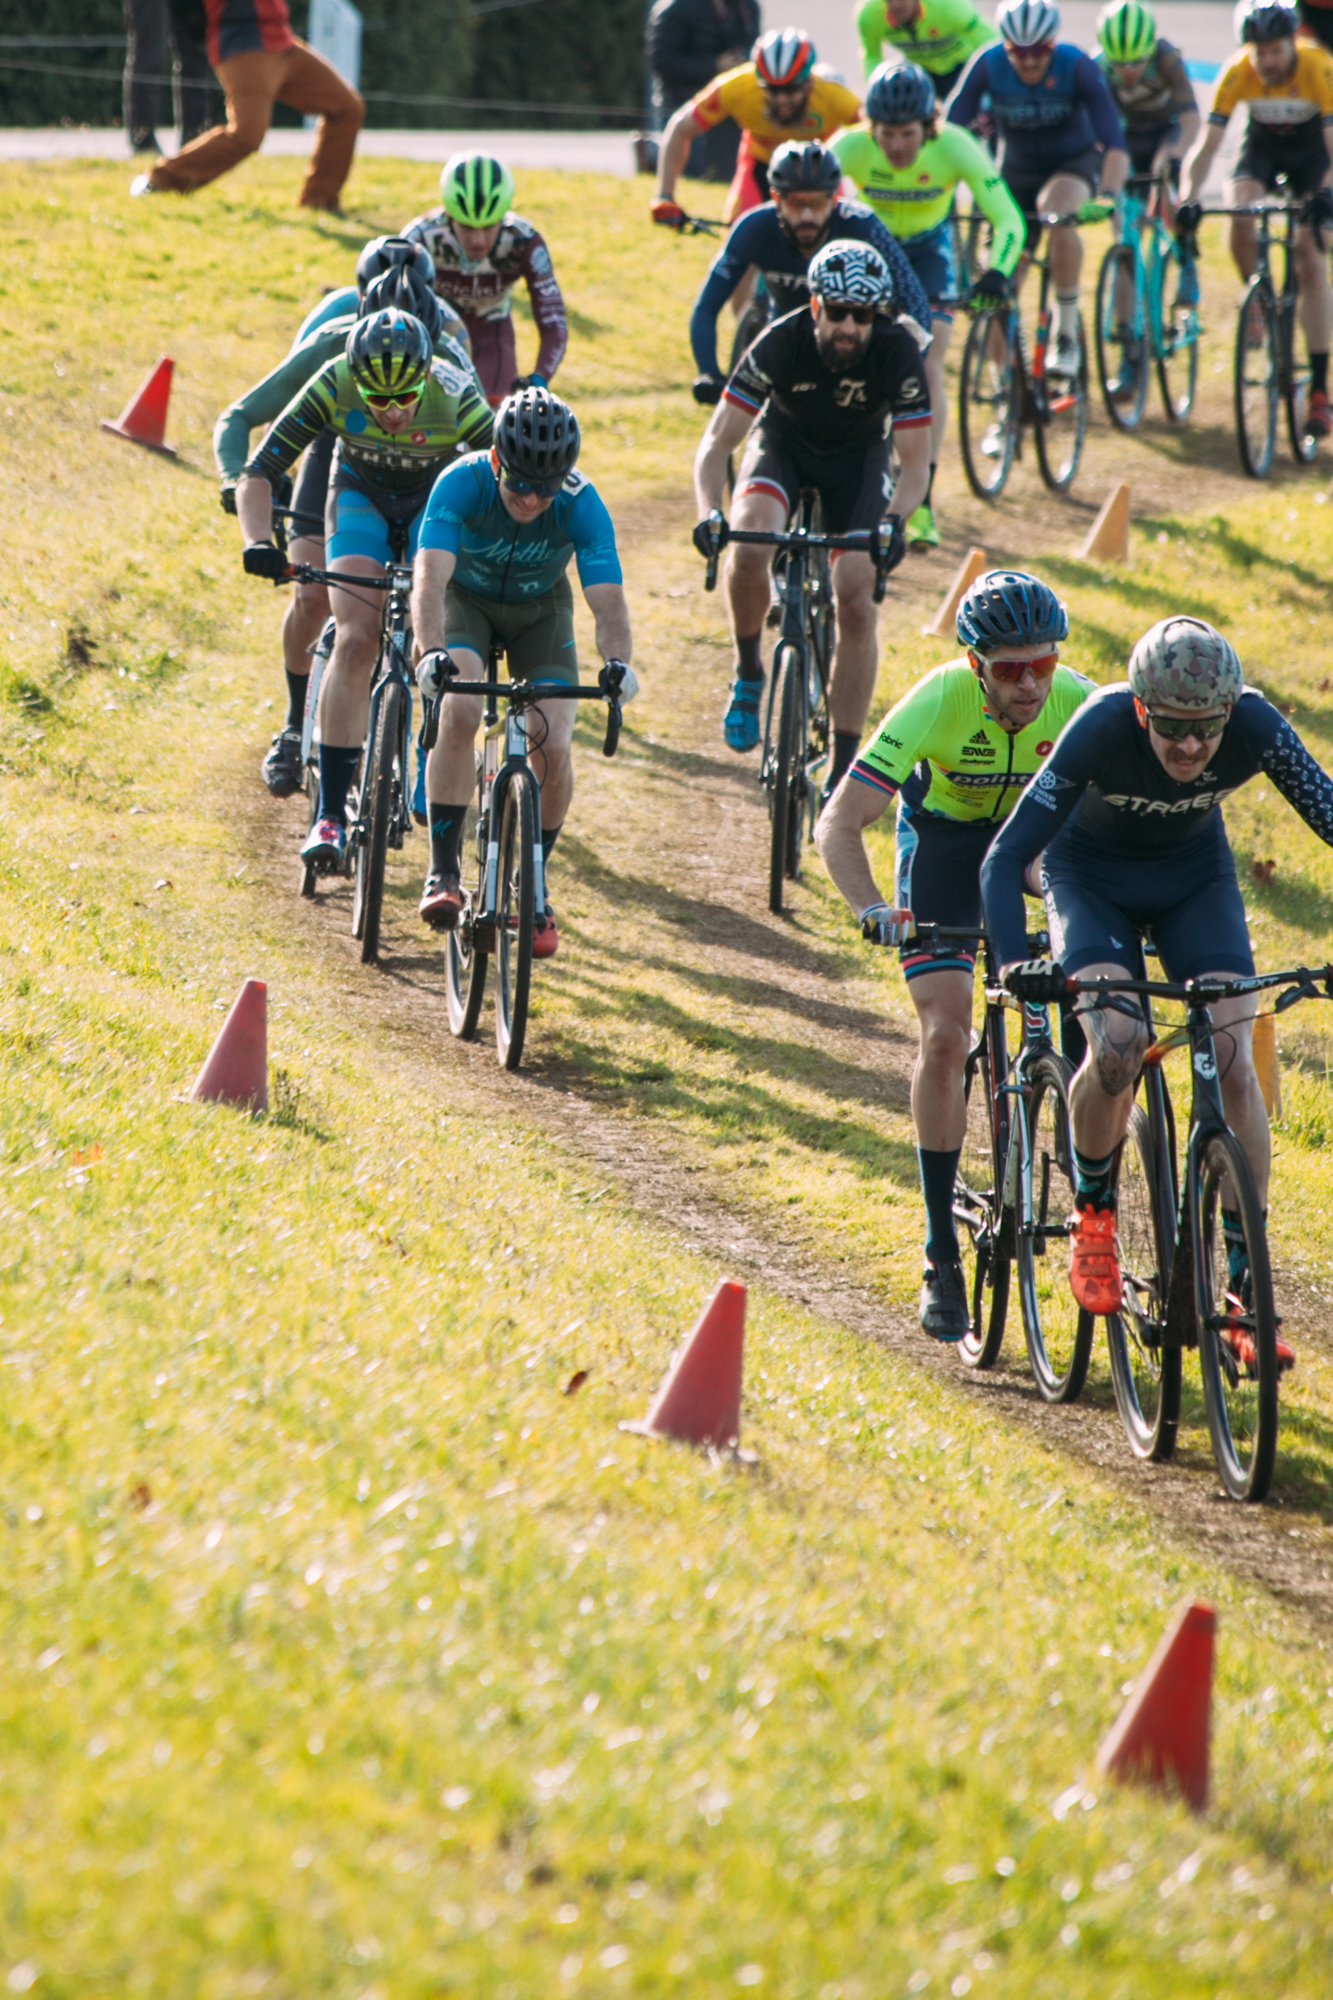 Cyclocross18_CCCX_RainierHS-43-mettlecycling.jpg